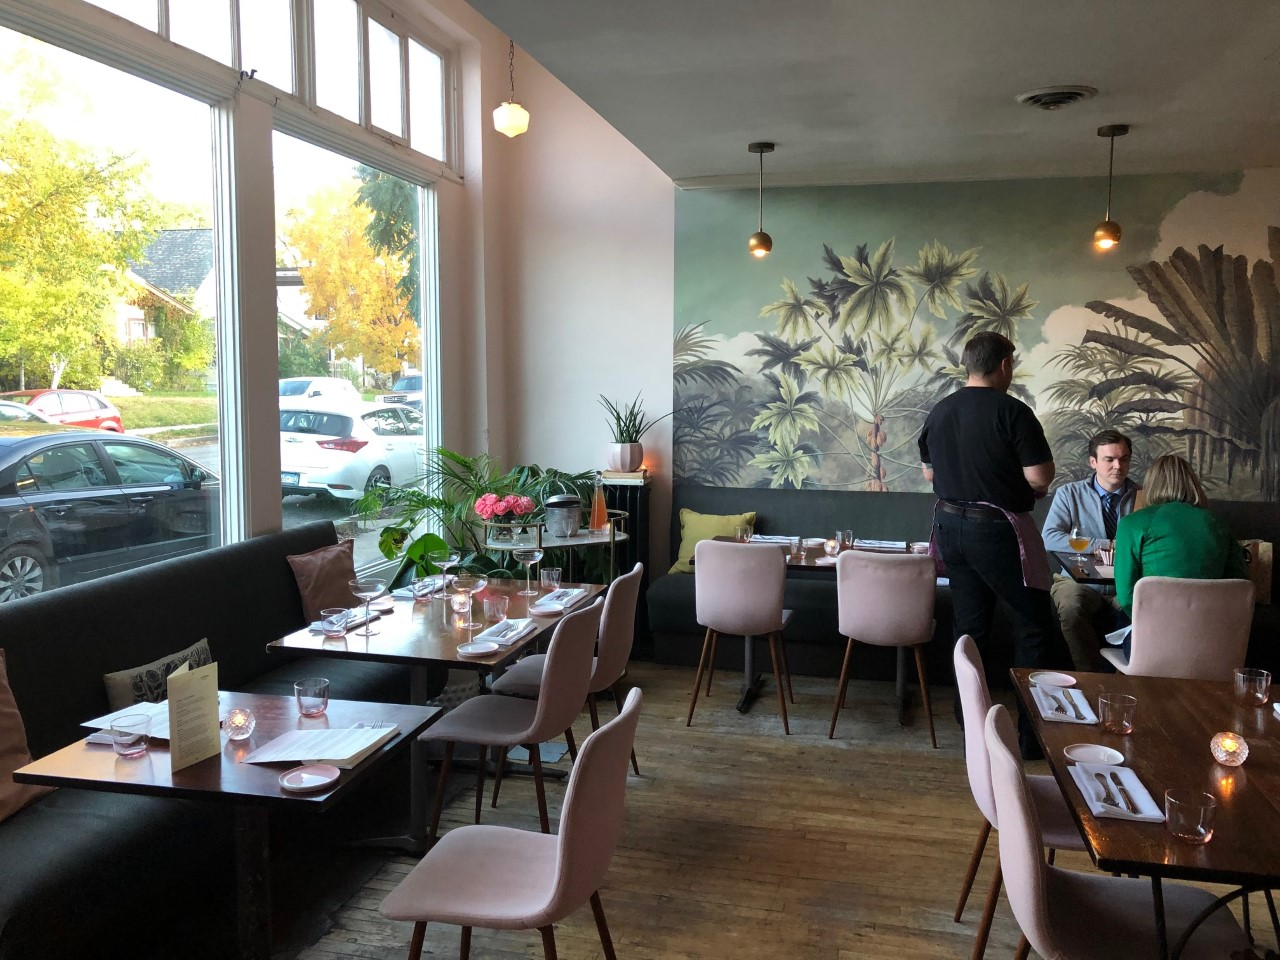 Restaurant review of Grand Café